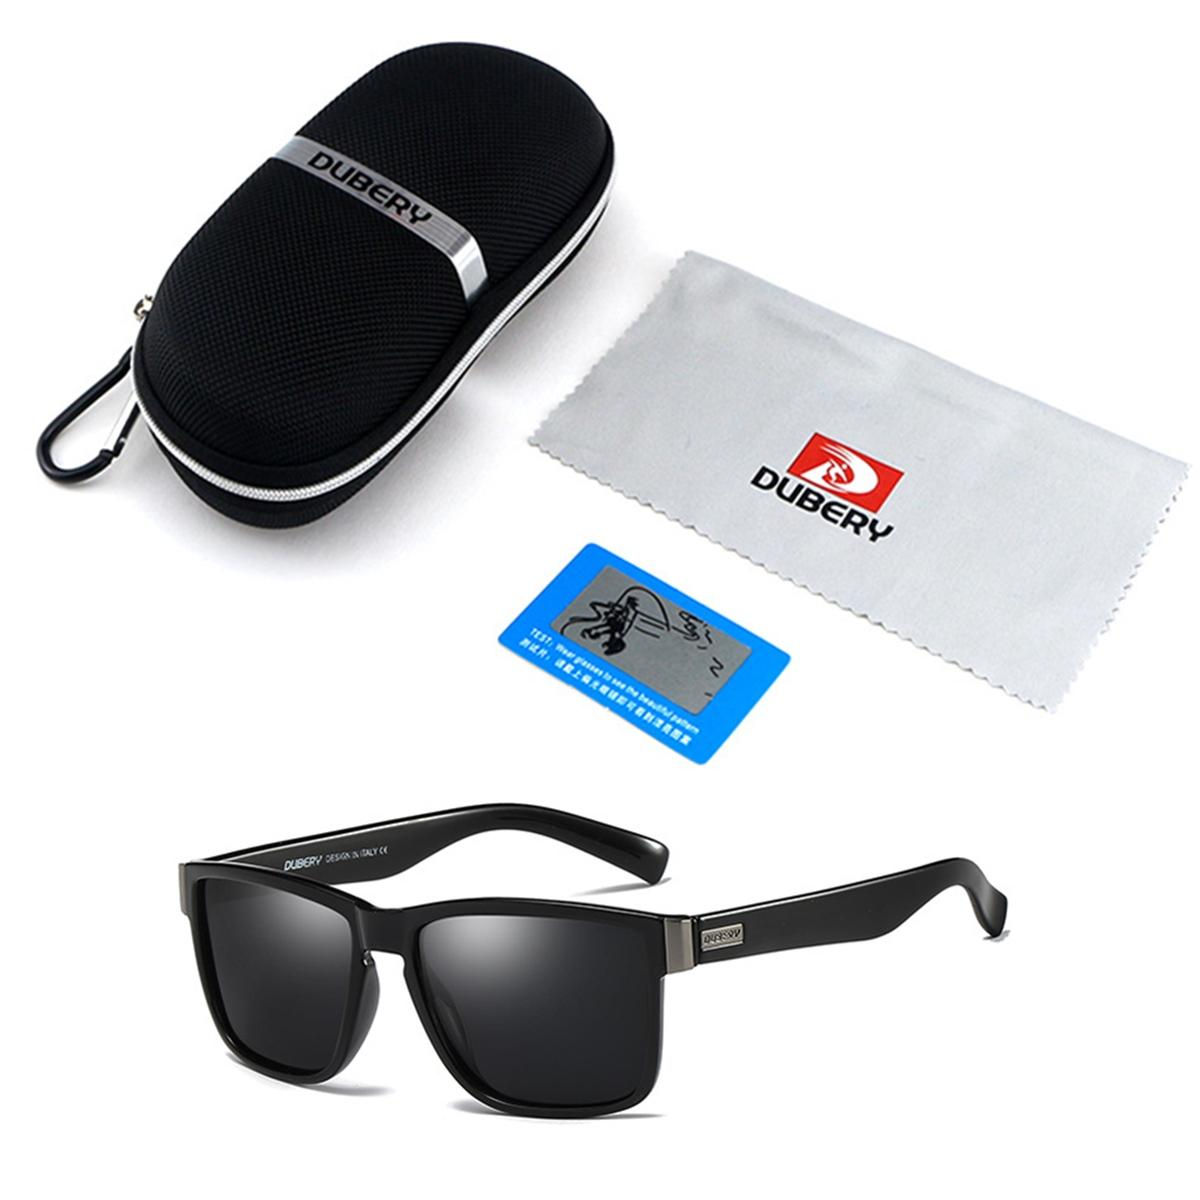 UV400 Polarized Glasses Driving Sports Sunglasses Black Green Blue with Box